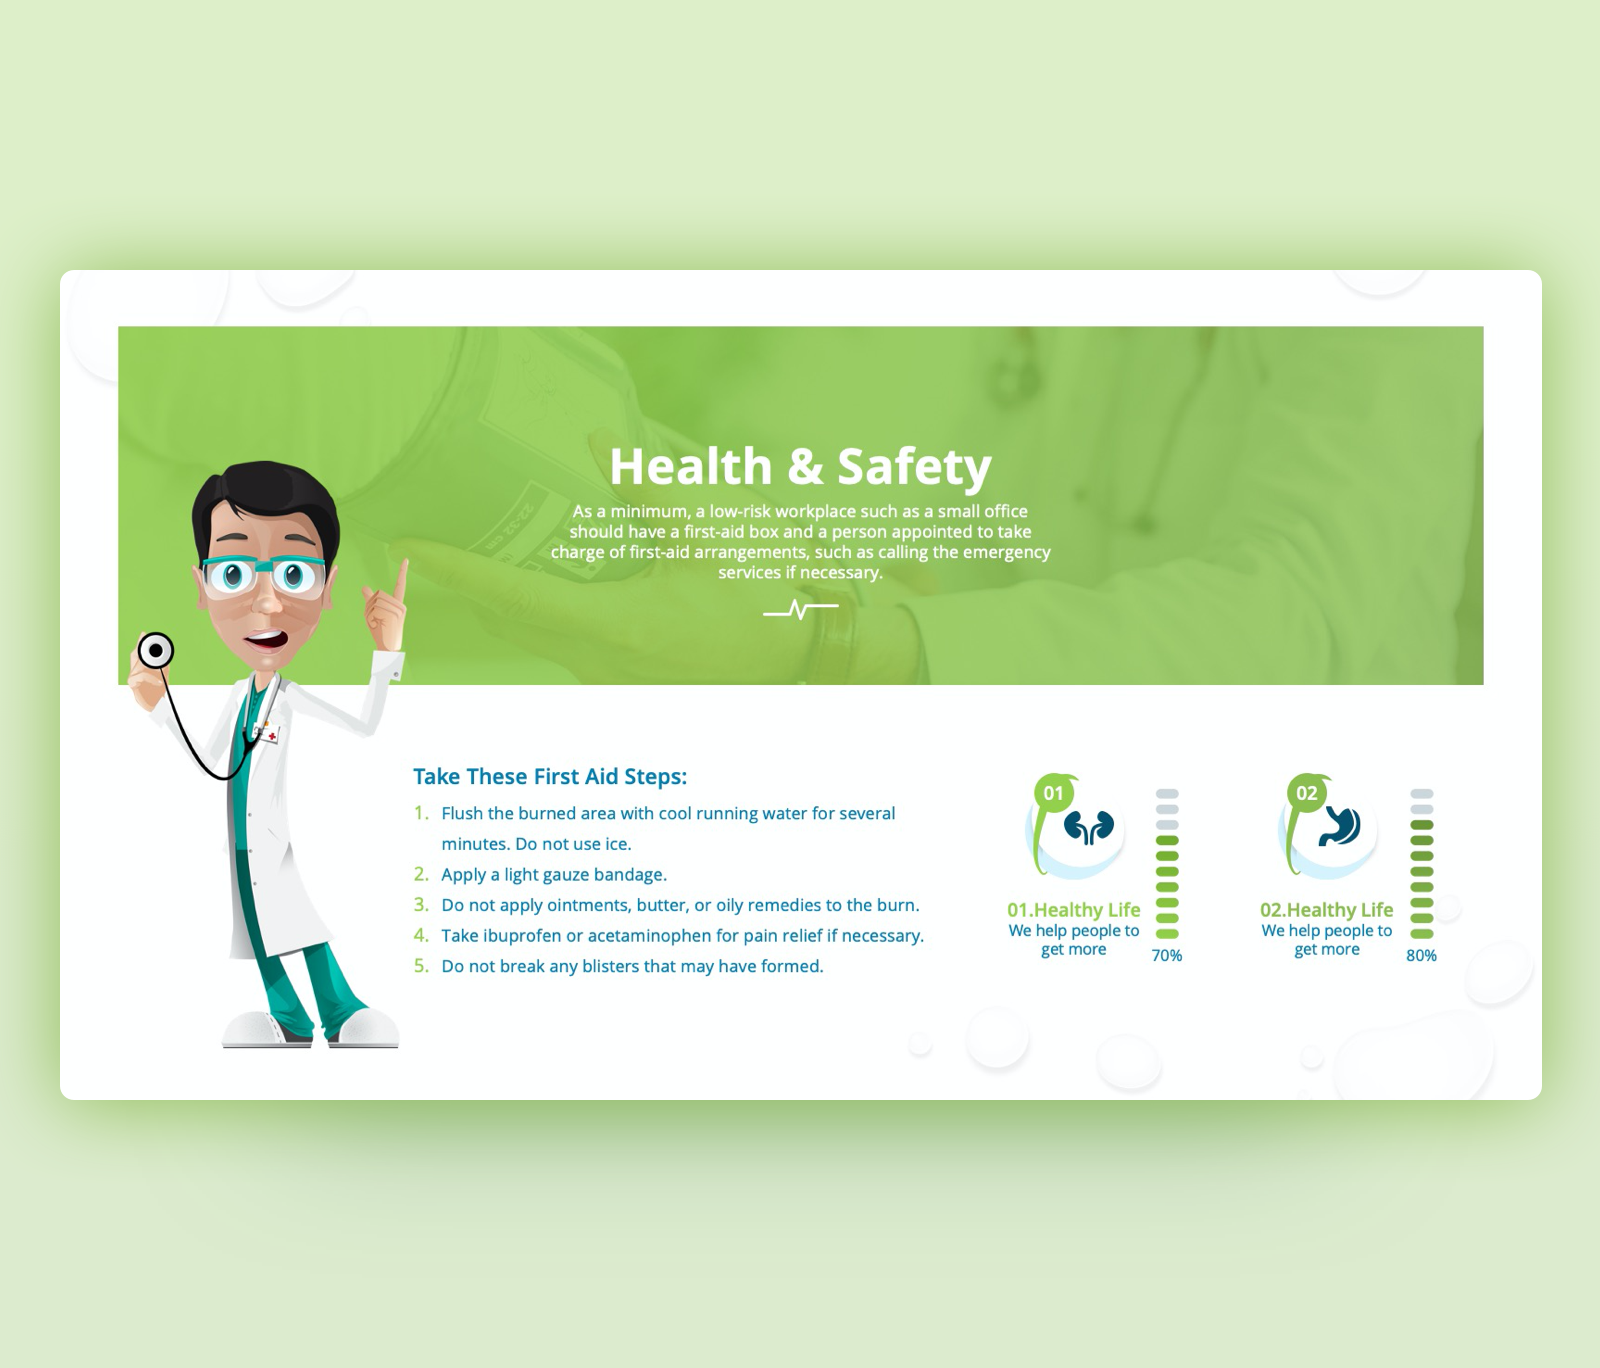 Health & Safety PowerPoint Template – First Aid Steps